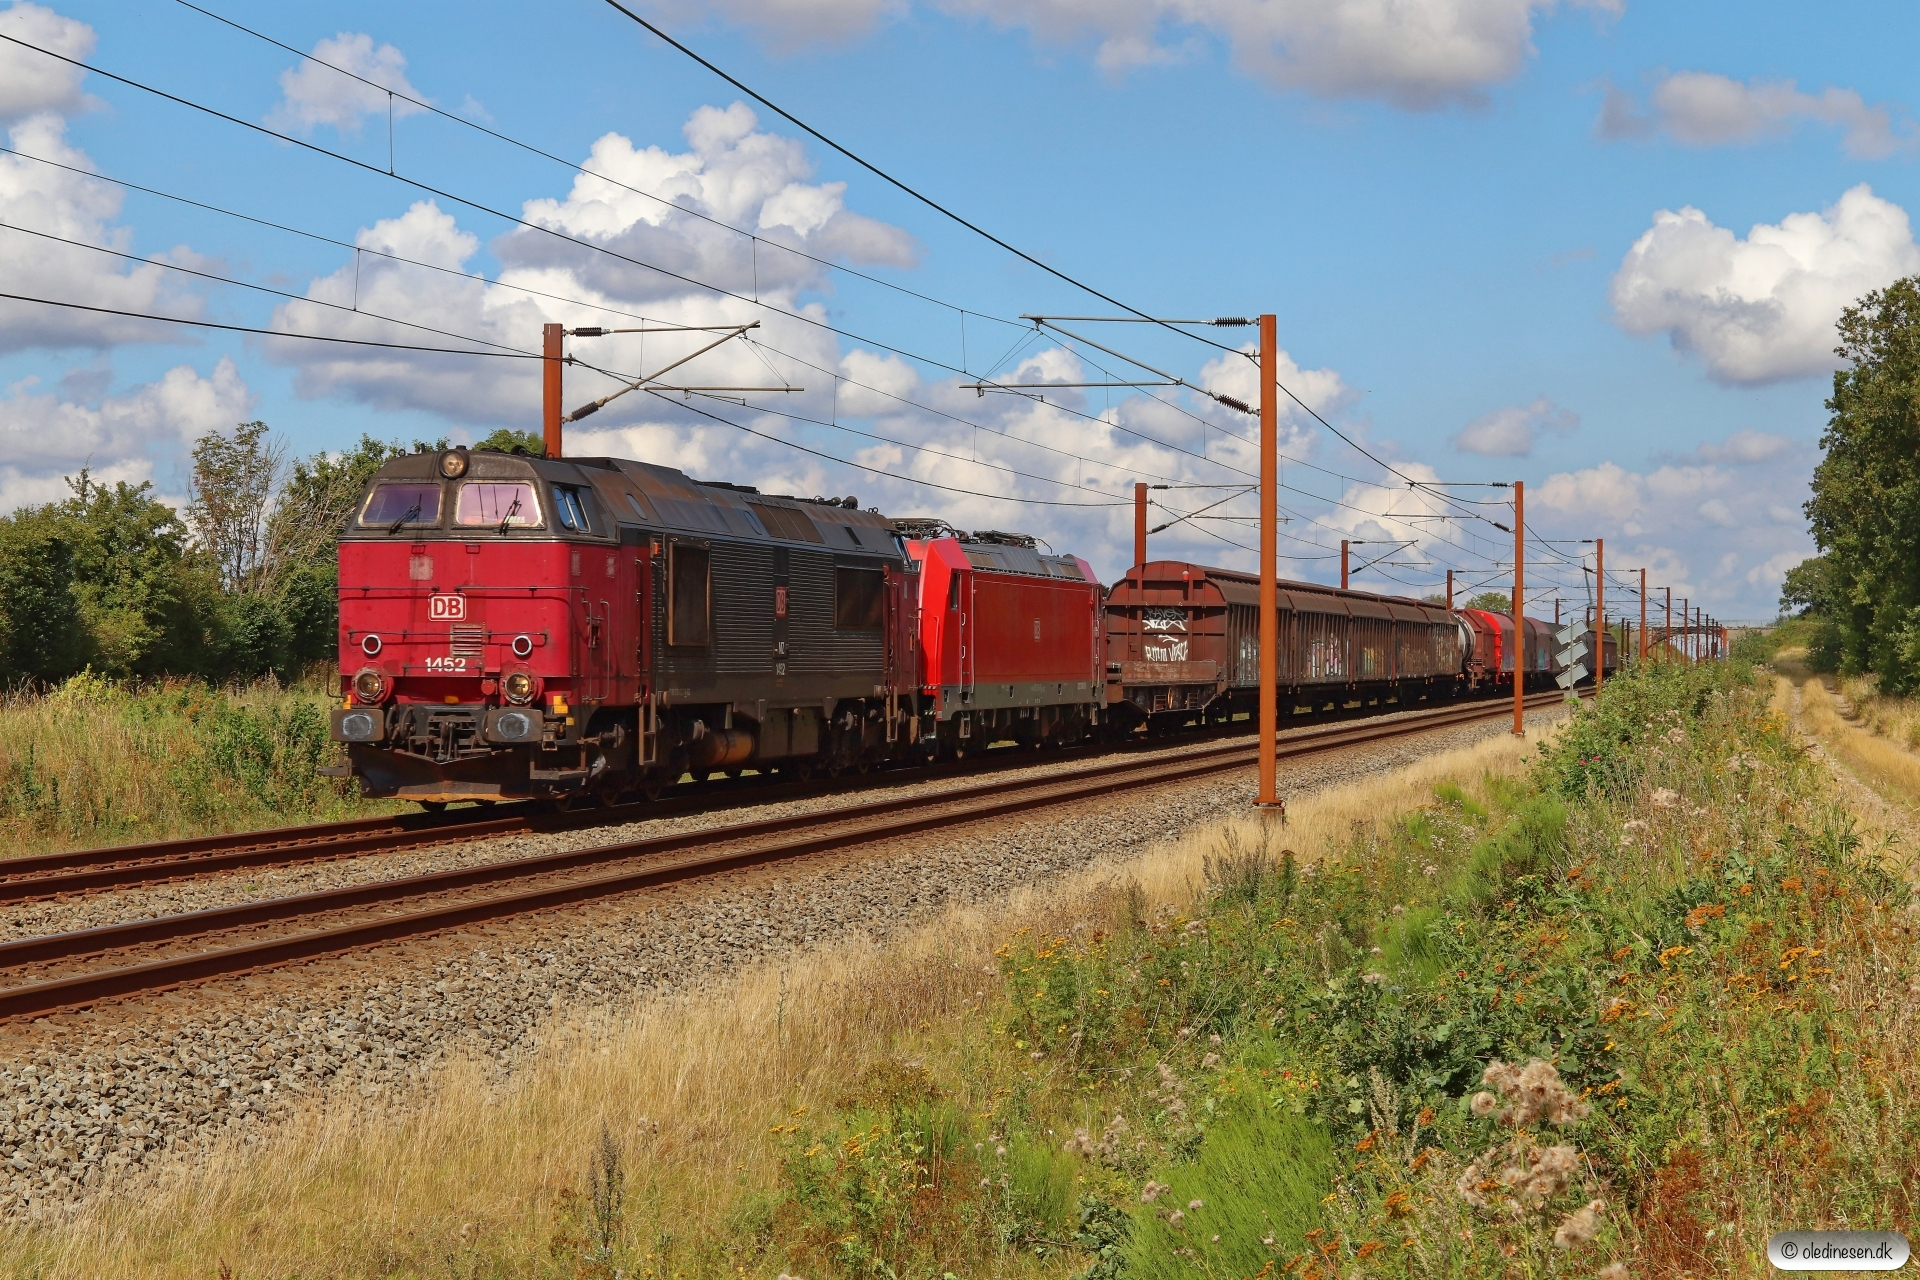 DBCSC MZ 1452+DB 185 326-3 med G 44753 Fa-Pa. Km 50,2 Fa (Farris-Sommersted) 19.08.2020.